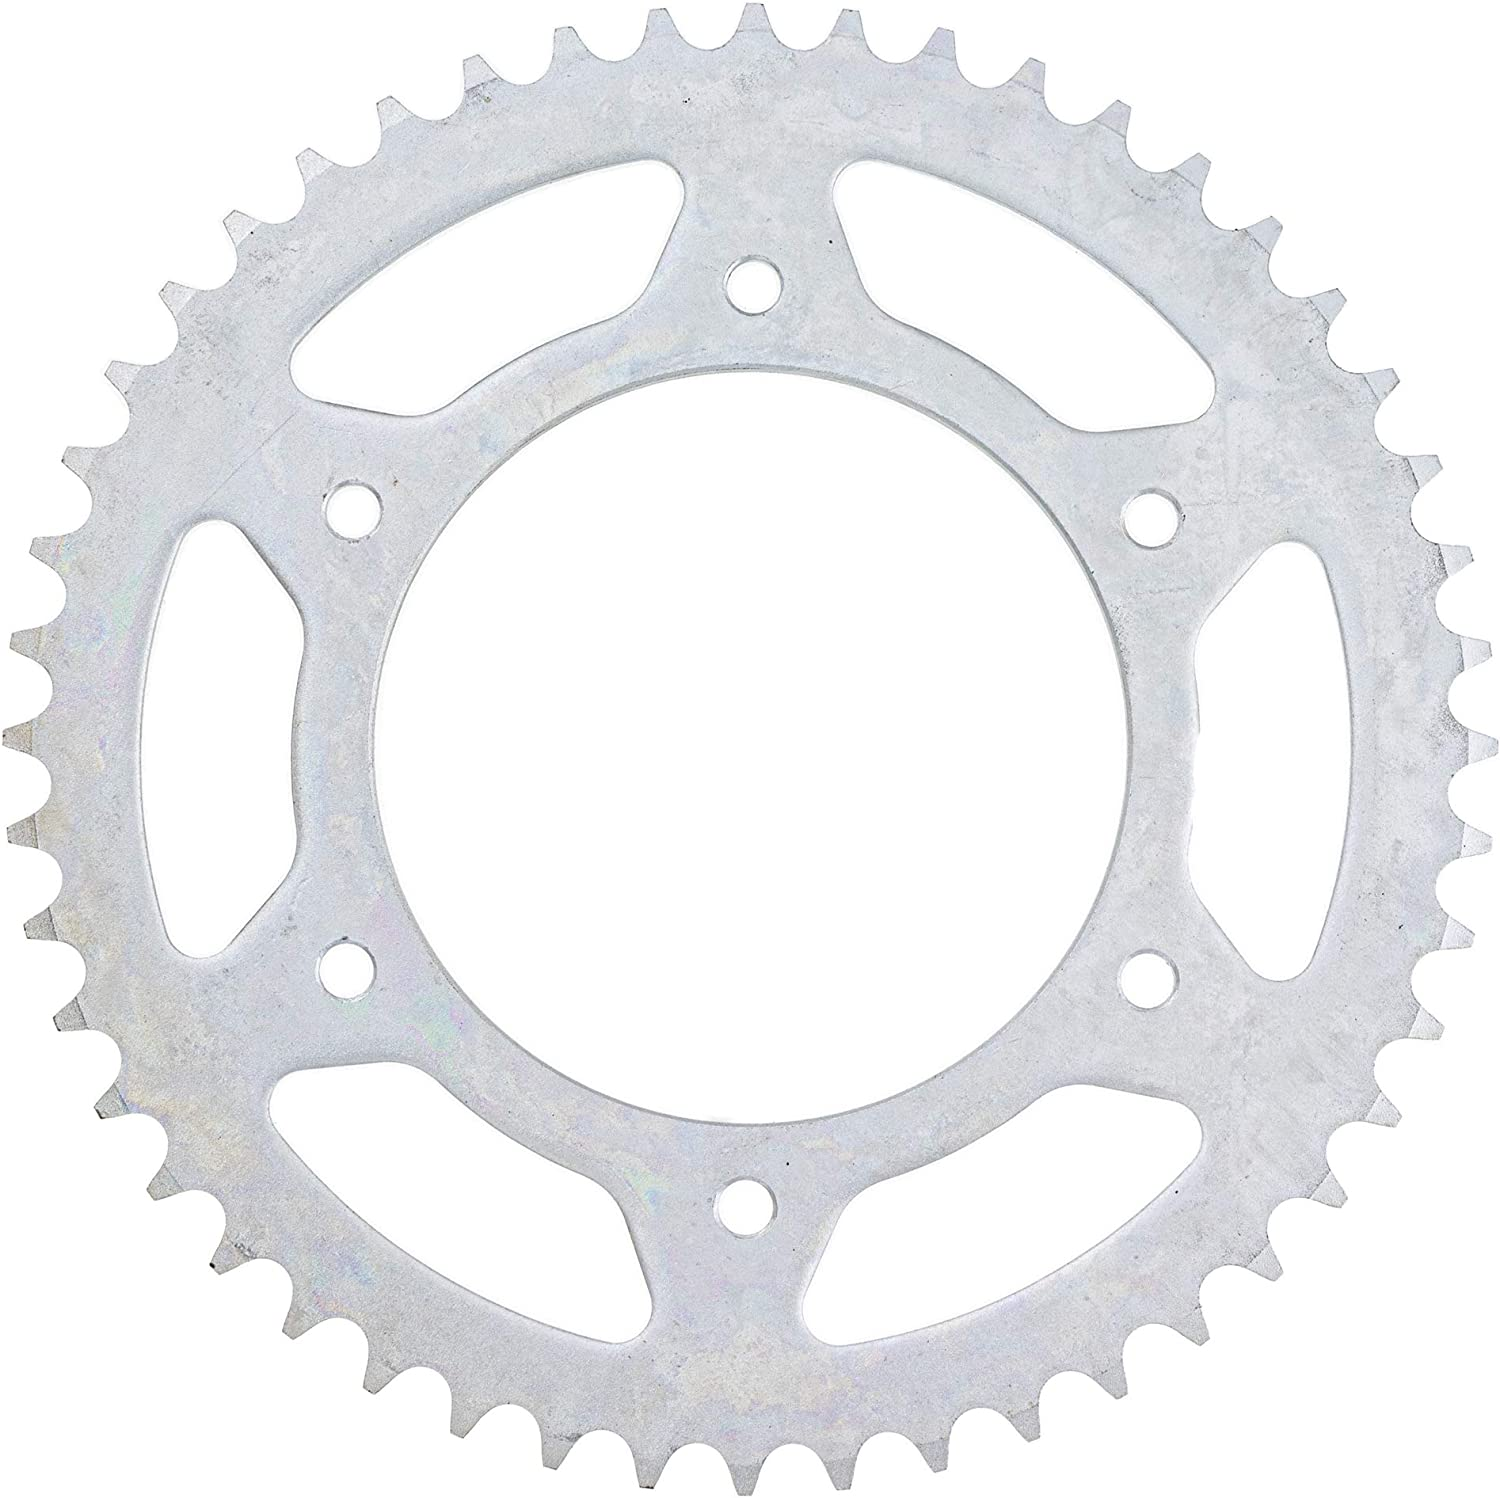 NICHE 520 Pitch 48 Tooth Rear Drive Sprocket For 1996-2019 Honda CRF450R CRF250R CR250R CR125R CR500R XR250R CRF150F XR650R